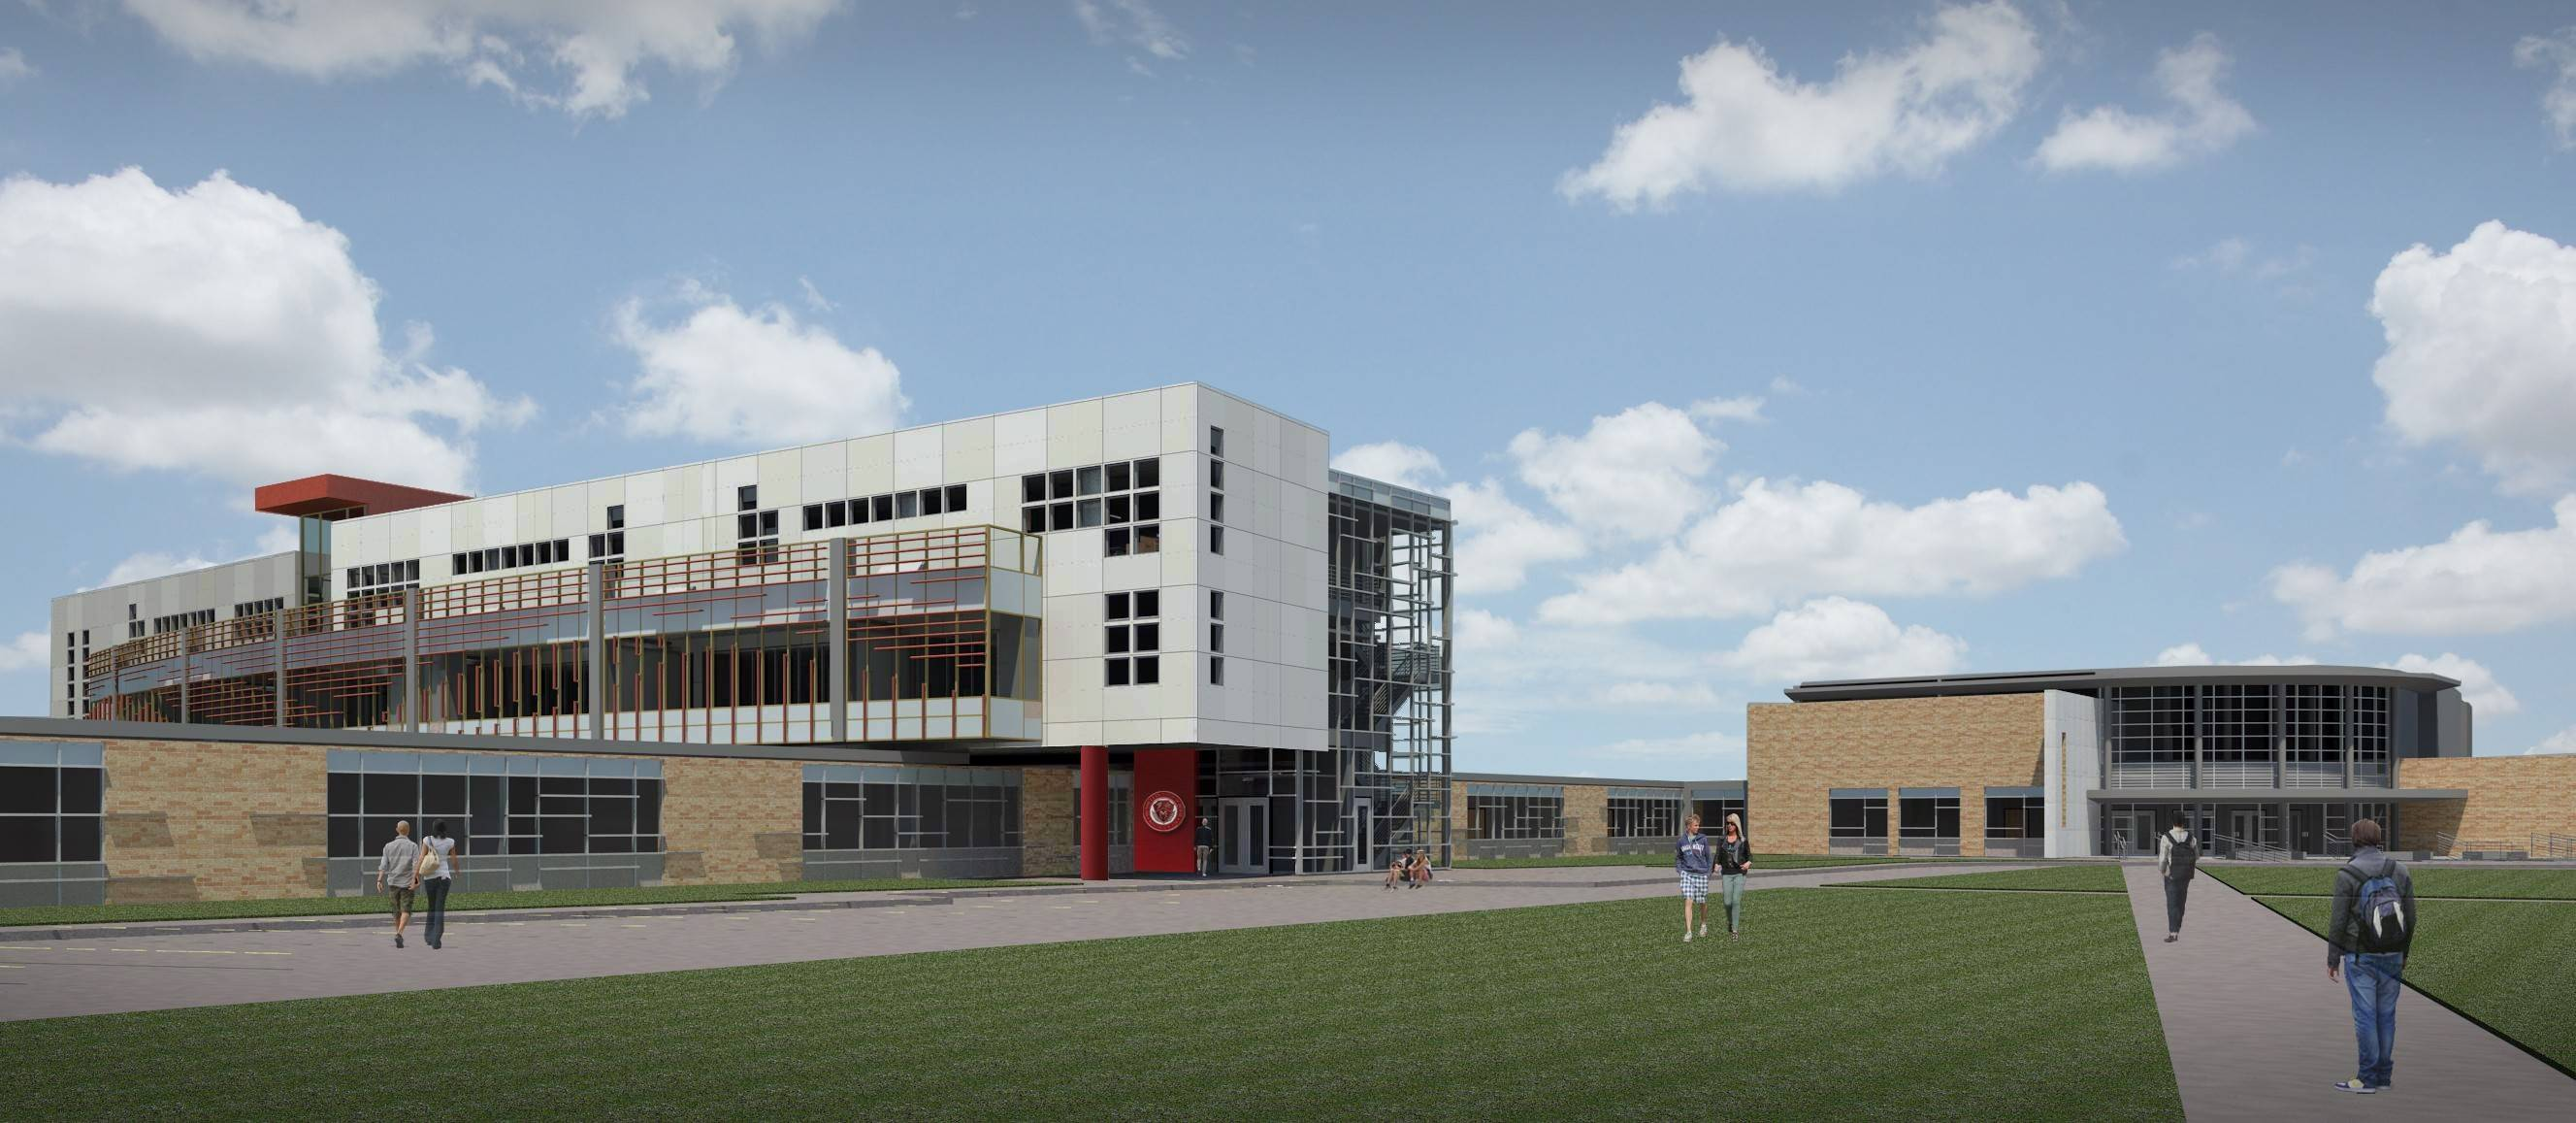 This is the architect's vision for the three-story expansion planned for Mundelein High School in 2015. The $23.6 million expansion will provide additional classroom and lab space for science and mathematics courses.